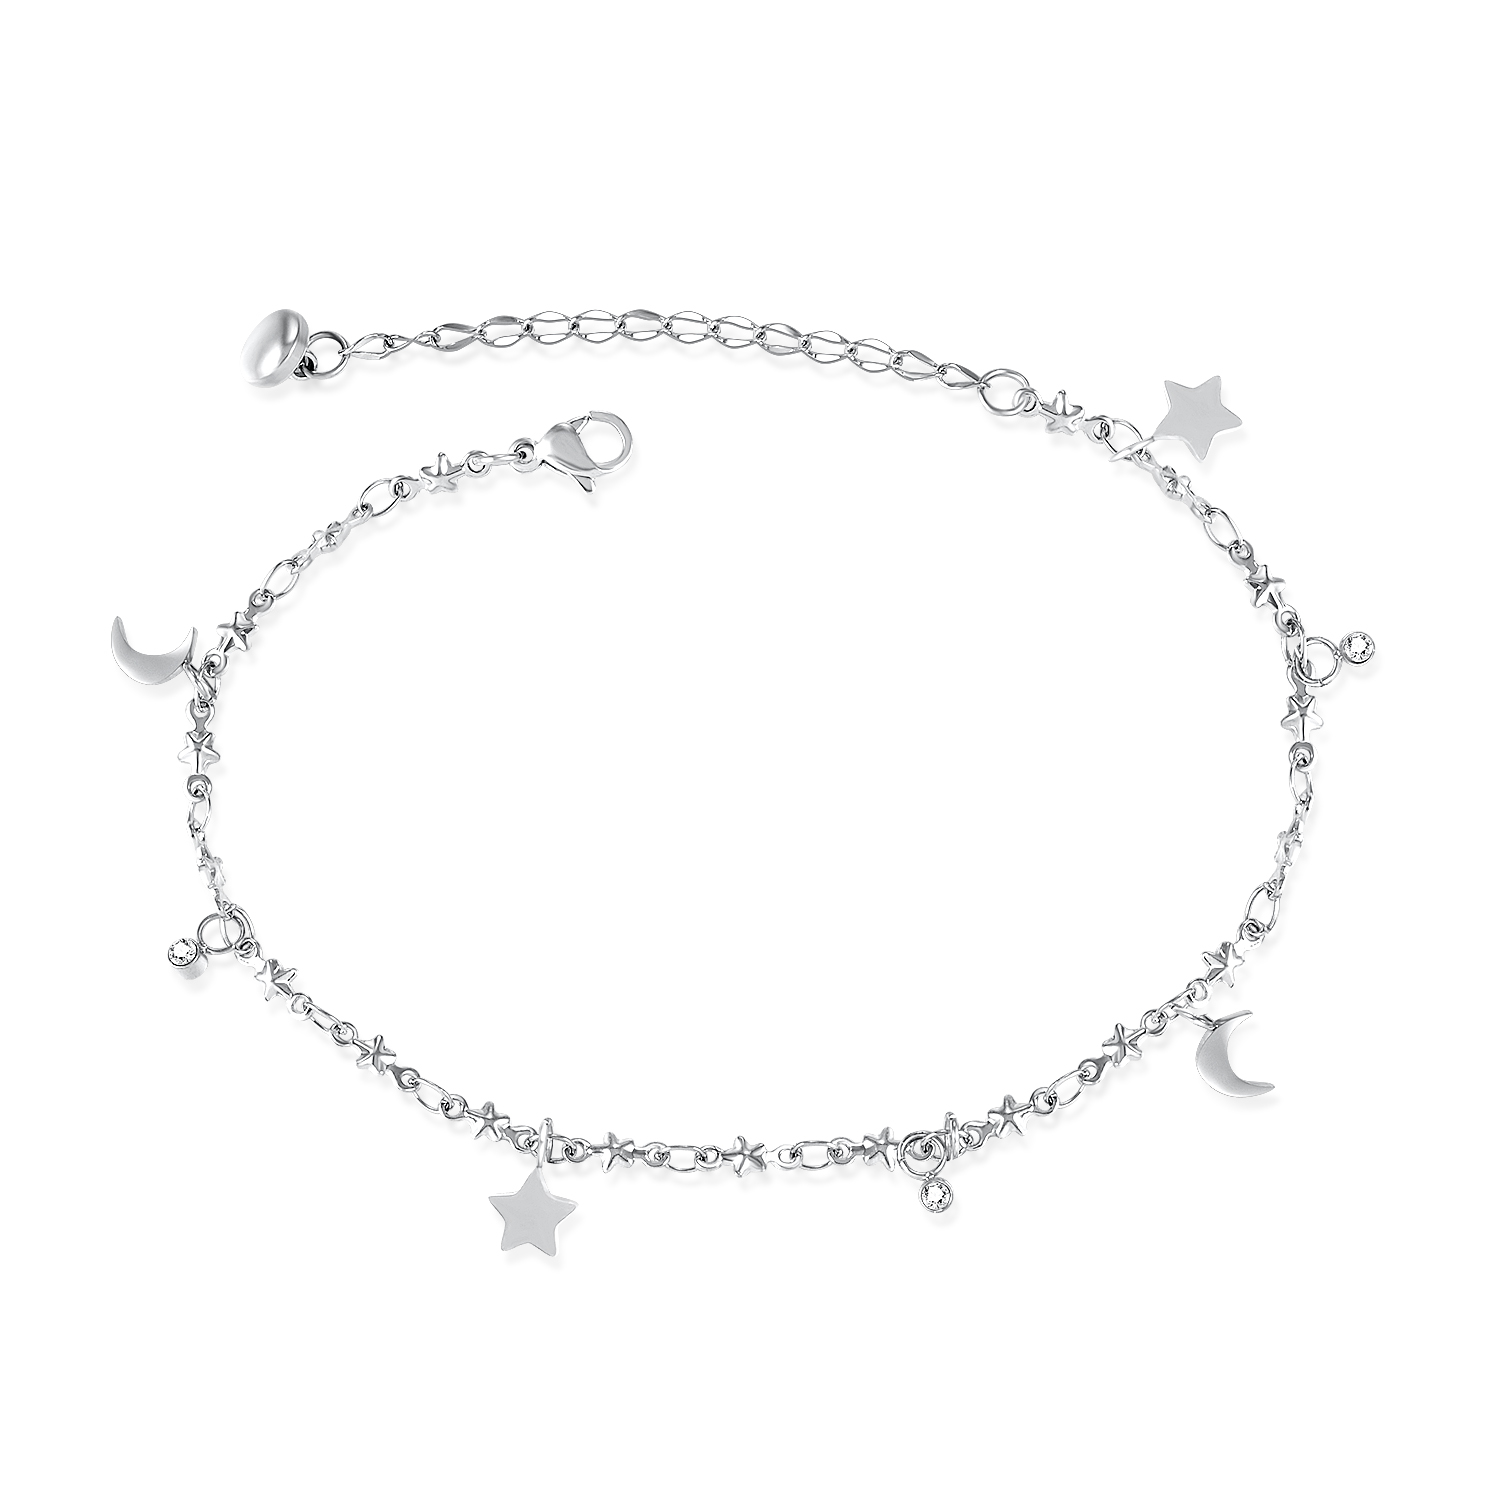 zirconia chain clr classic romantic is brilliant sterling ca in and expert products silver hand polished anklet details bracelet clear adorned link inlays crafted anklets designed ankle with this heart shaped a cubic by